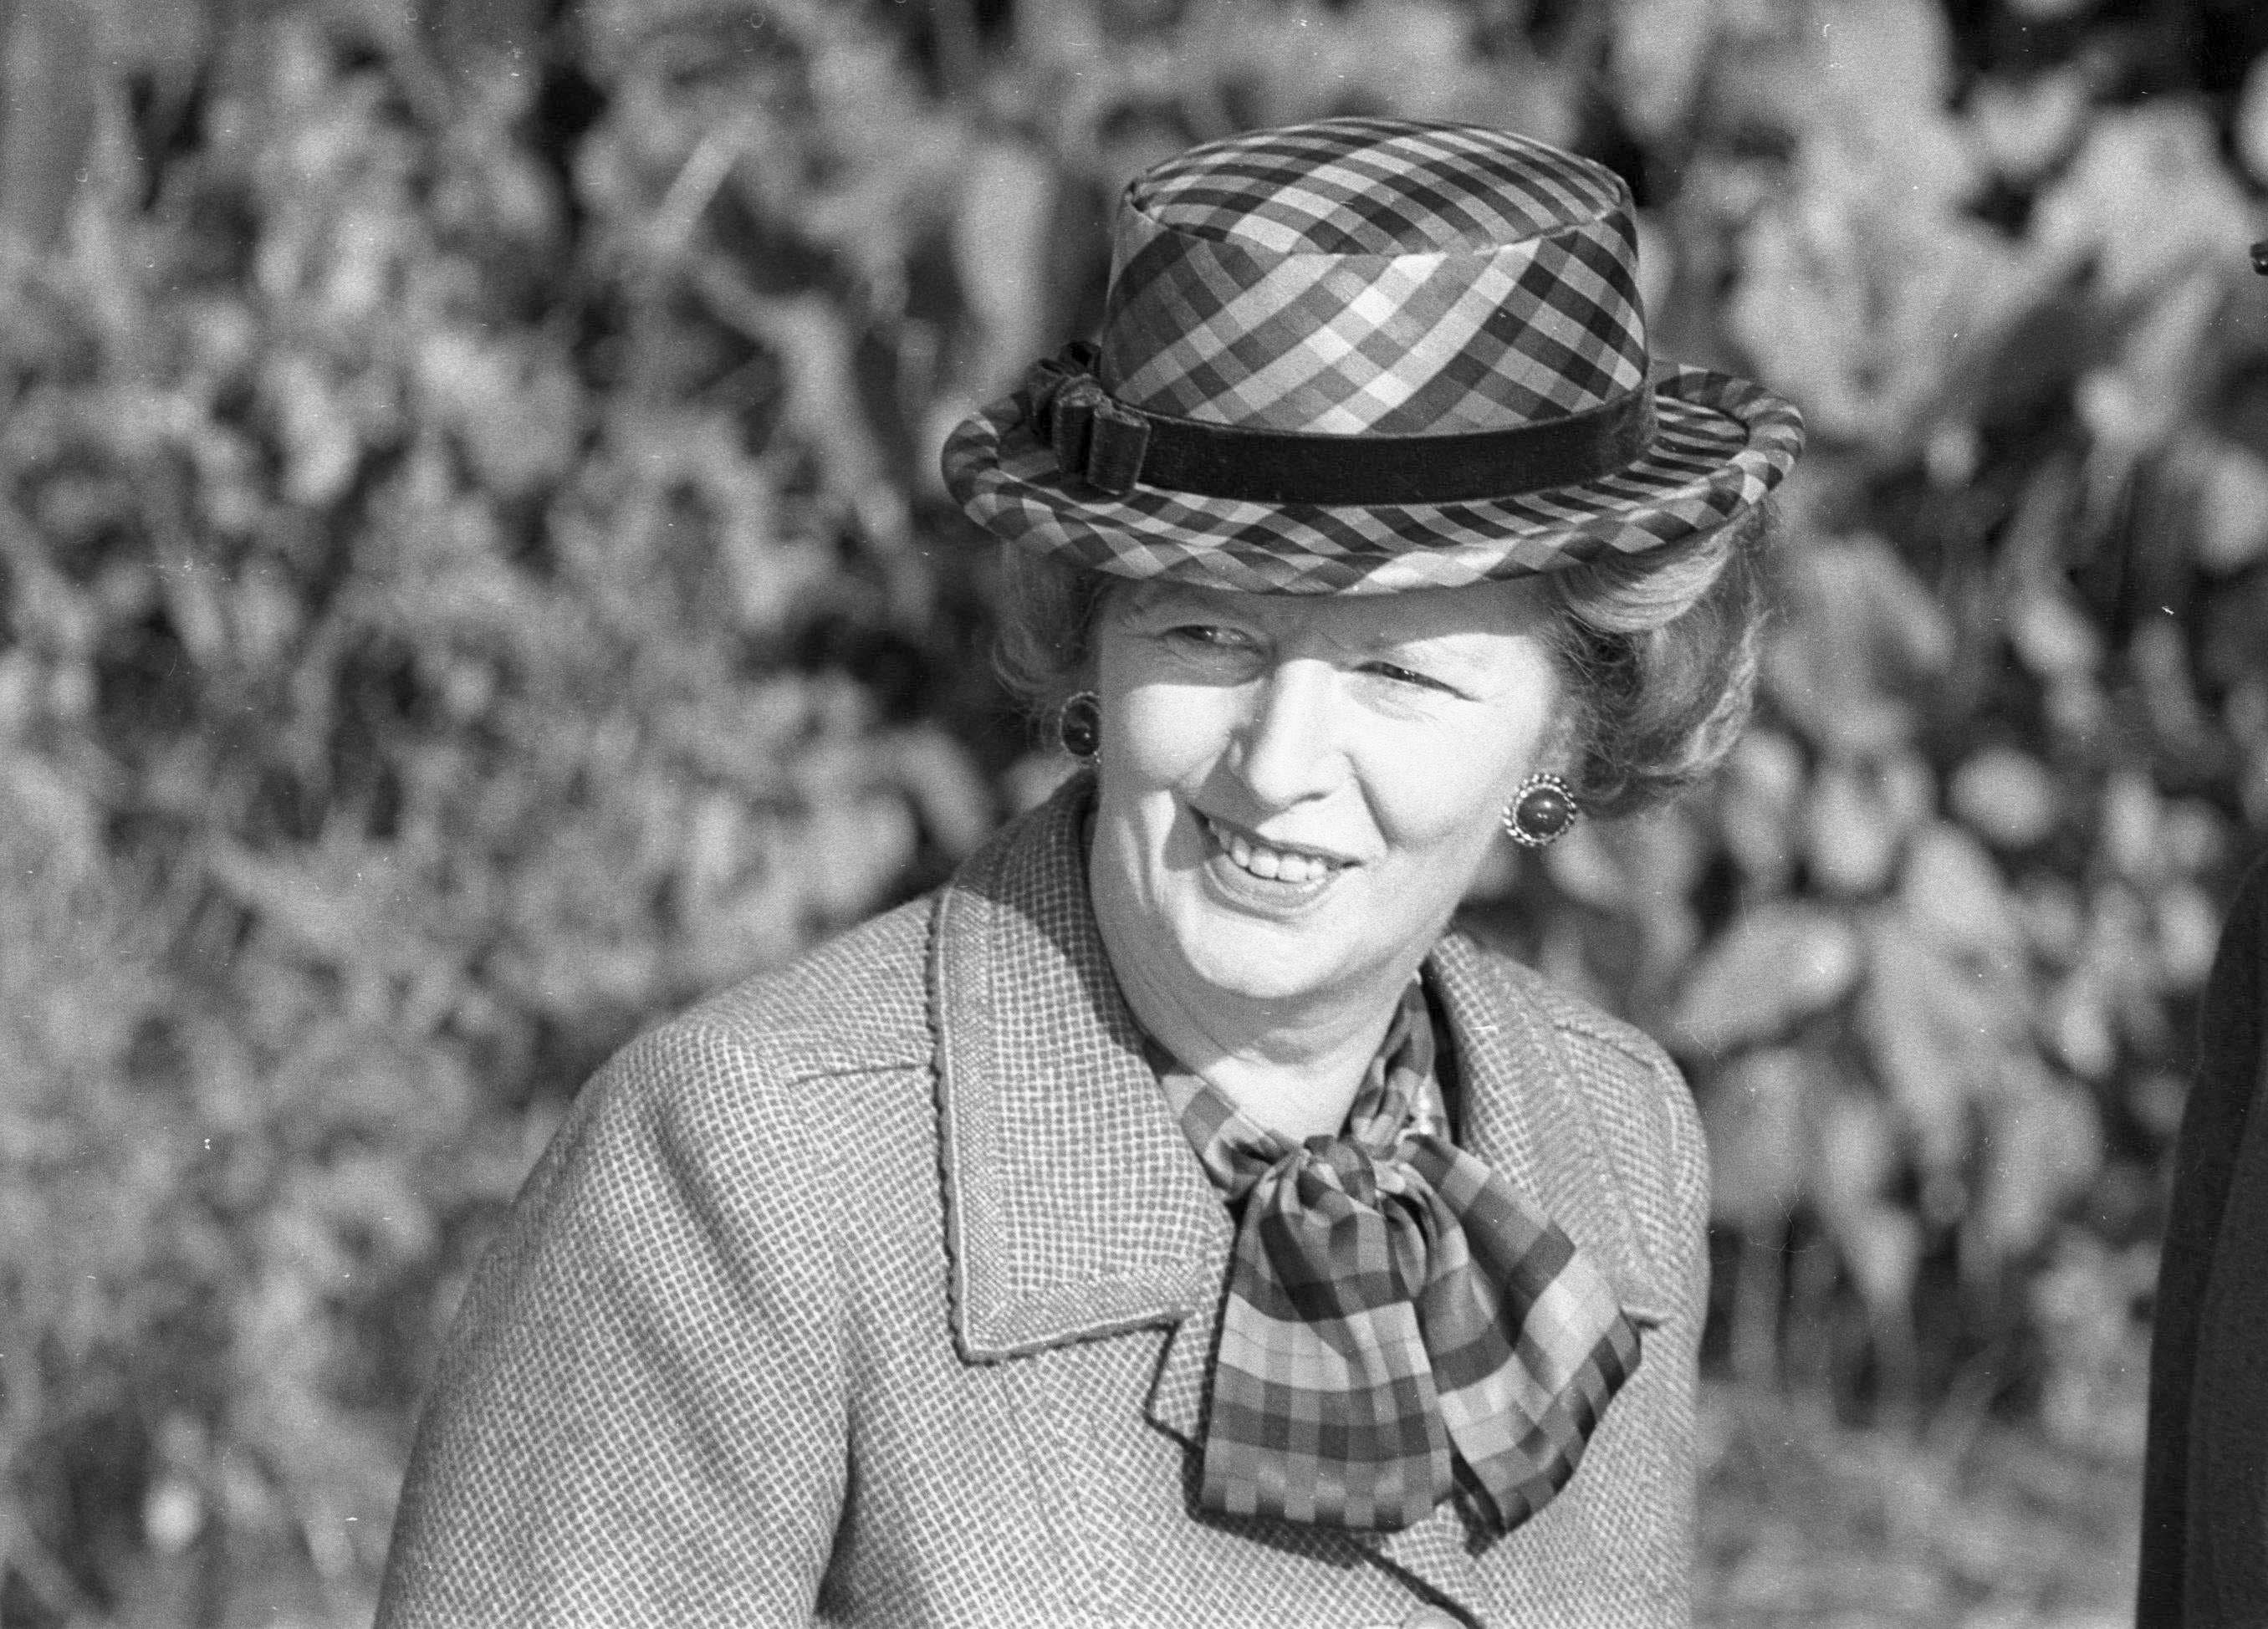 Then Britain's Prime Minister Margaret Thatcher wears a checkered green hat on her 60th birthday as she attends church near her official country residence, Chequers, near Aylesbury, England in this October 13, 1985 file photo. (Reuters)